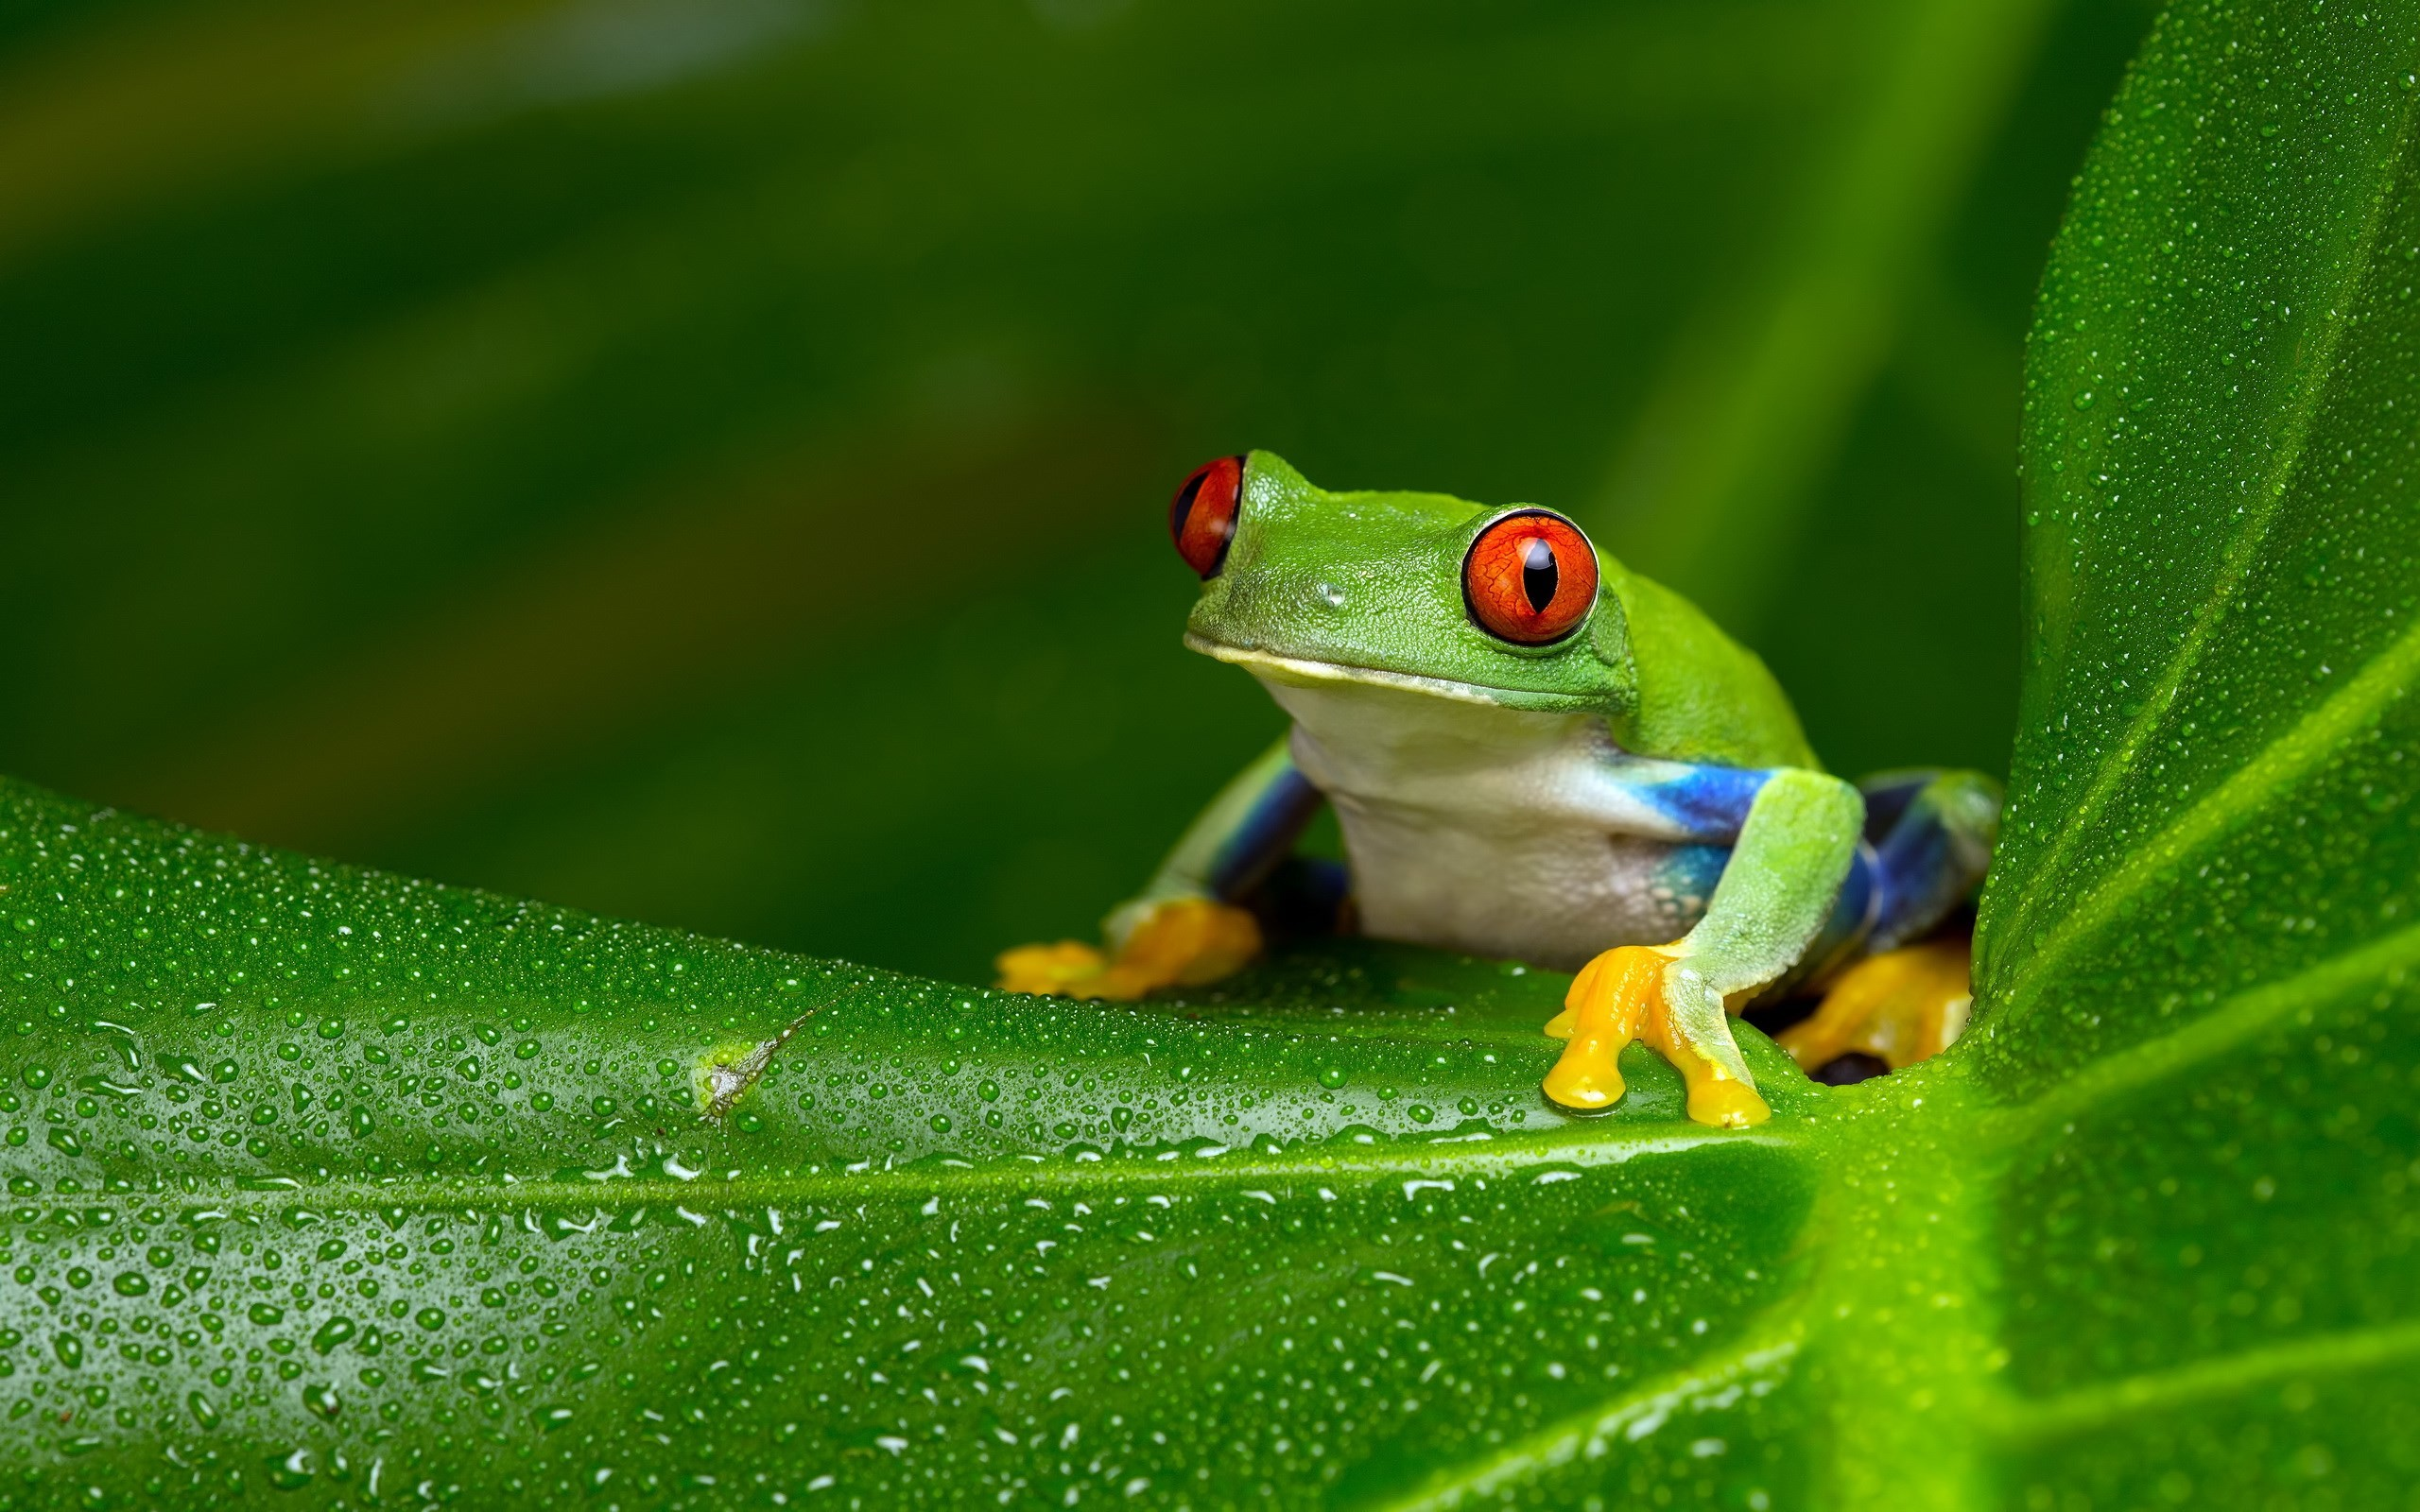 Res: 2560x1600, Tree Frog Wallpapers 5 - 2560 X 1600